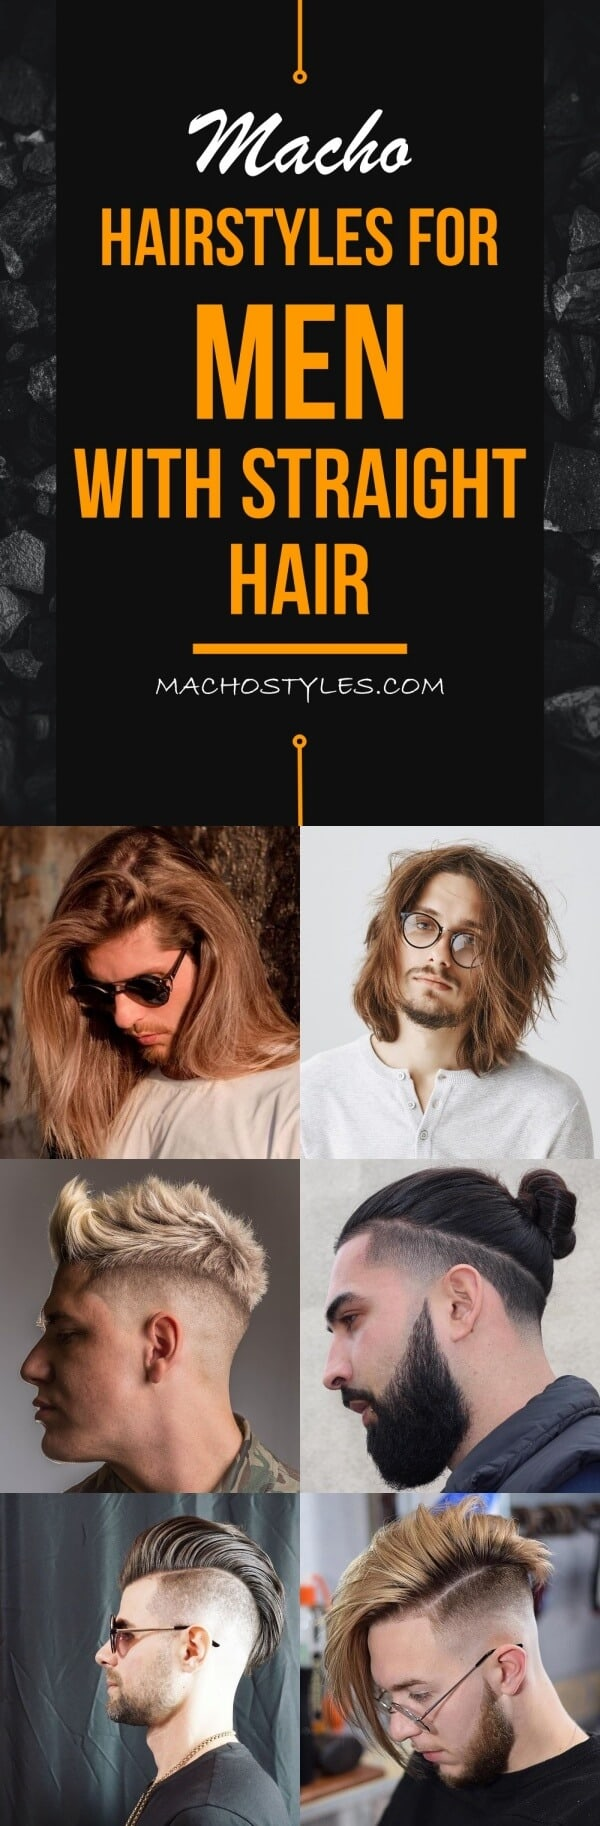 Macho Hairstyles For Men With Straight Hair